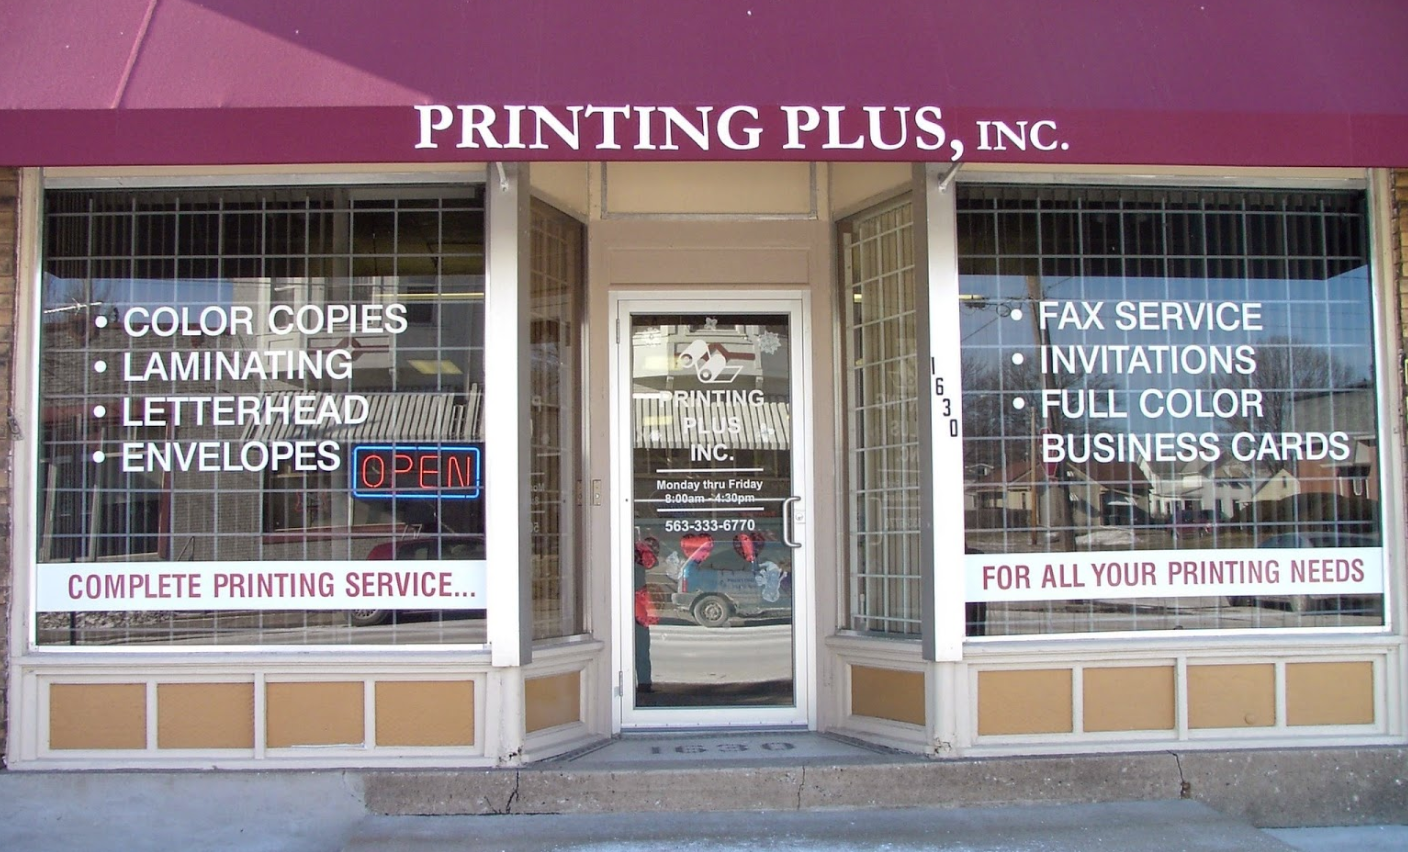 Printing Plus Inc. Signs & Vinyl Graphics image 0